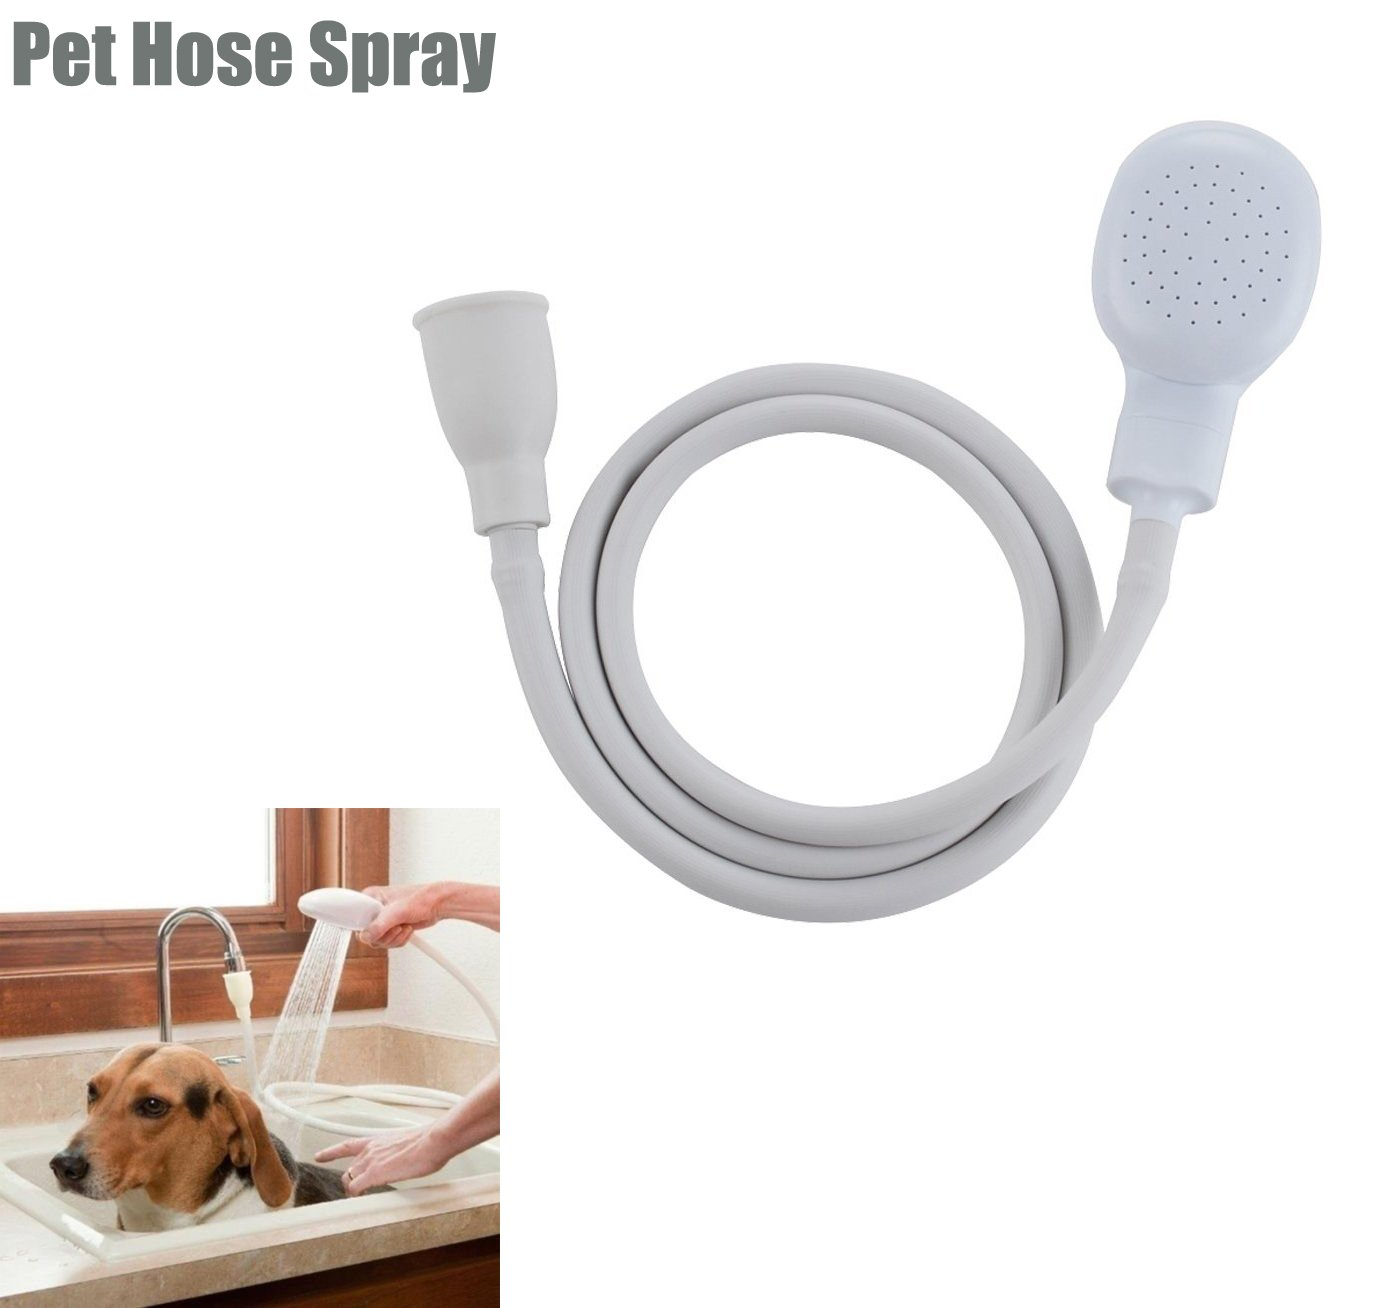 Fashionclubs Pet Dog Cat Shower Sprayer Faucet-to-Shower Converter Puppy Bath Handheld Showerhead With 1.1M/43Inch Hose